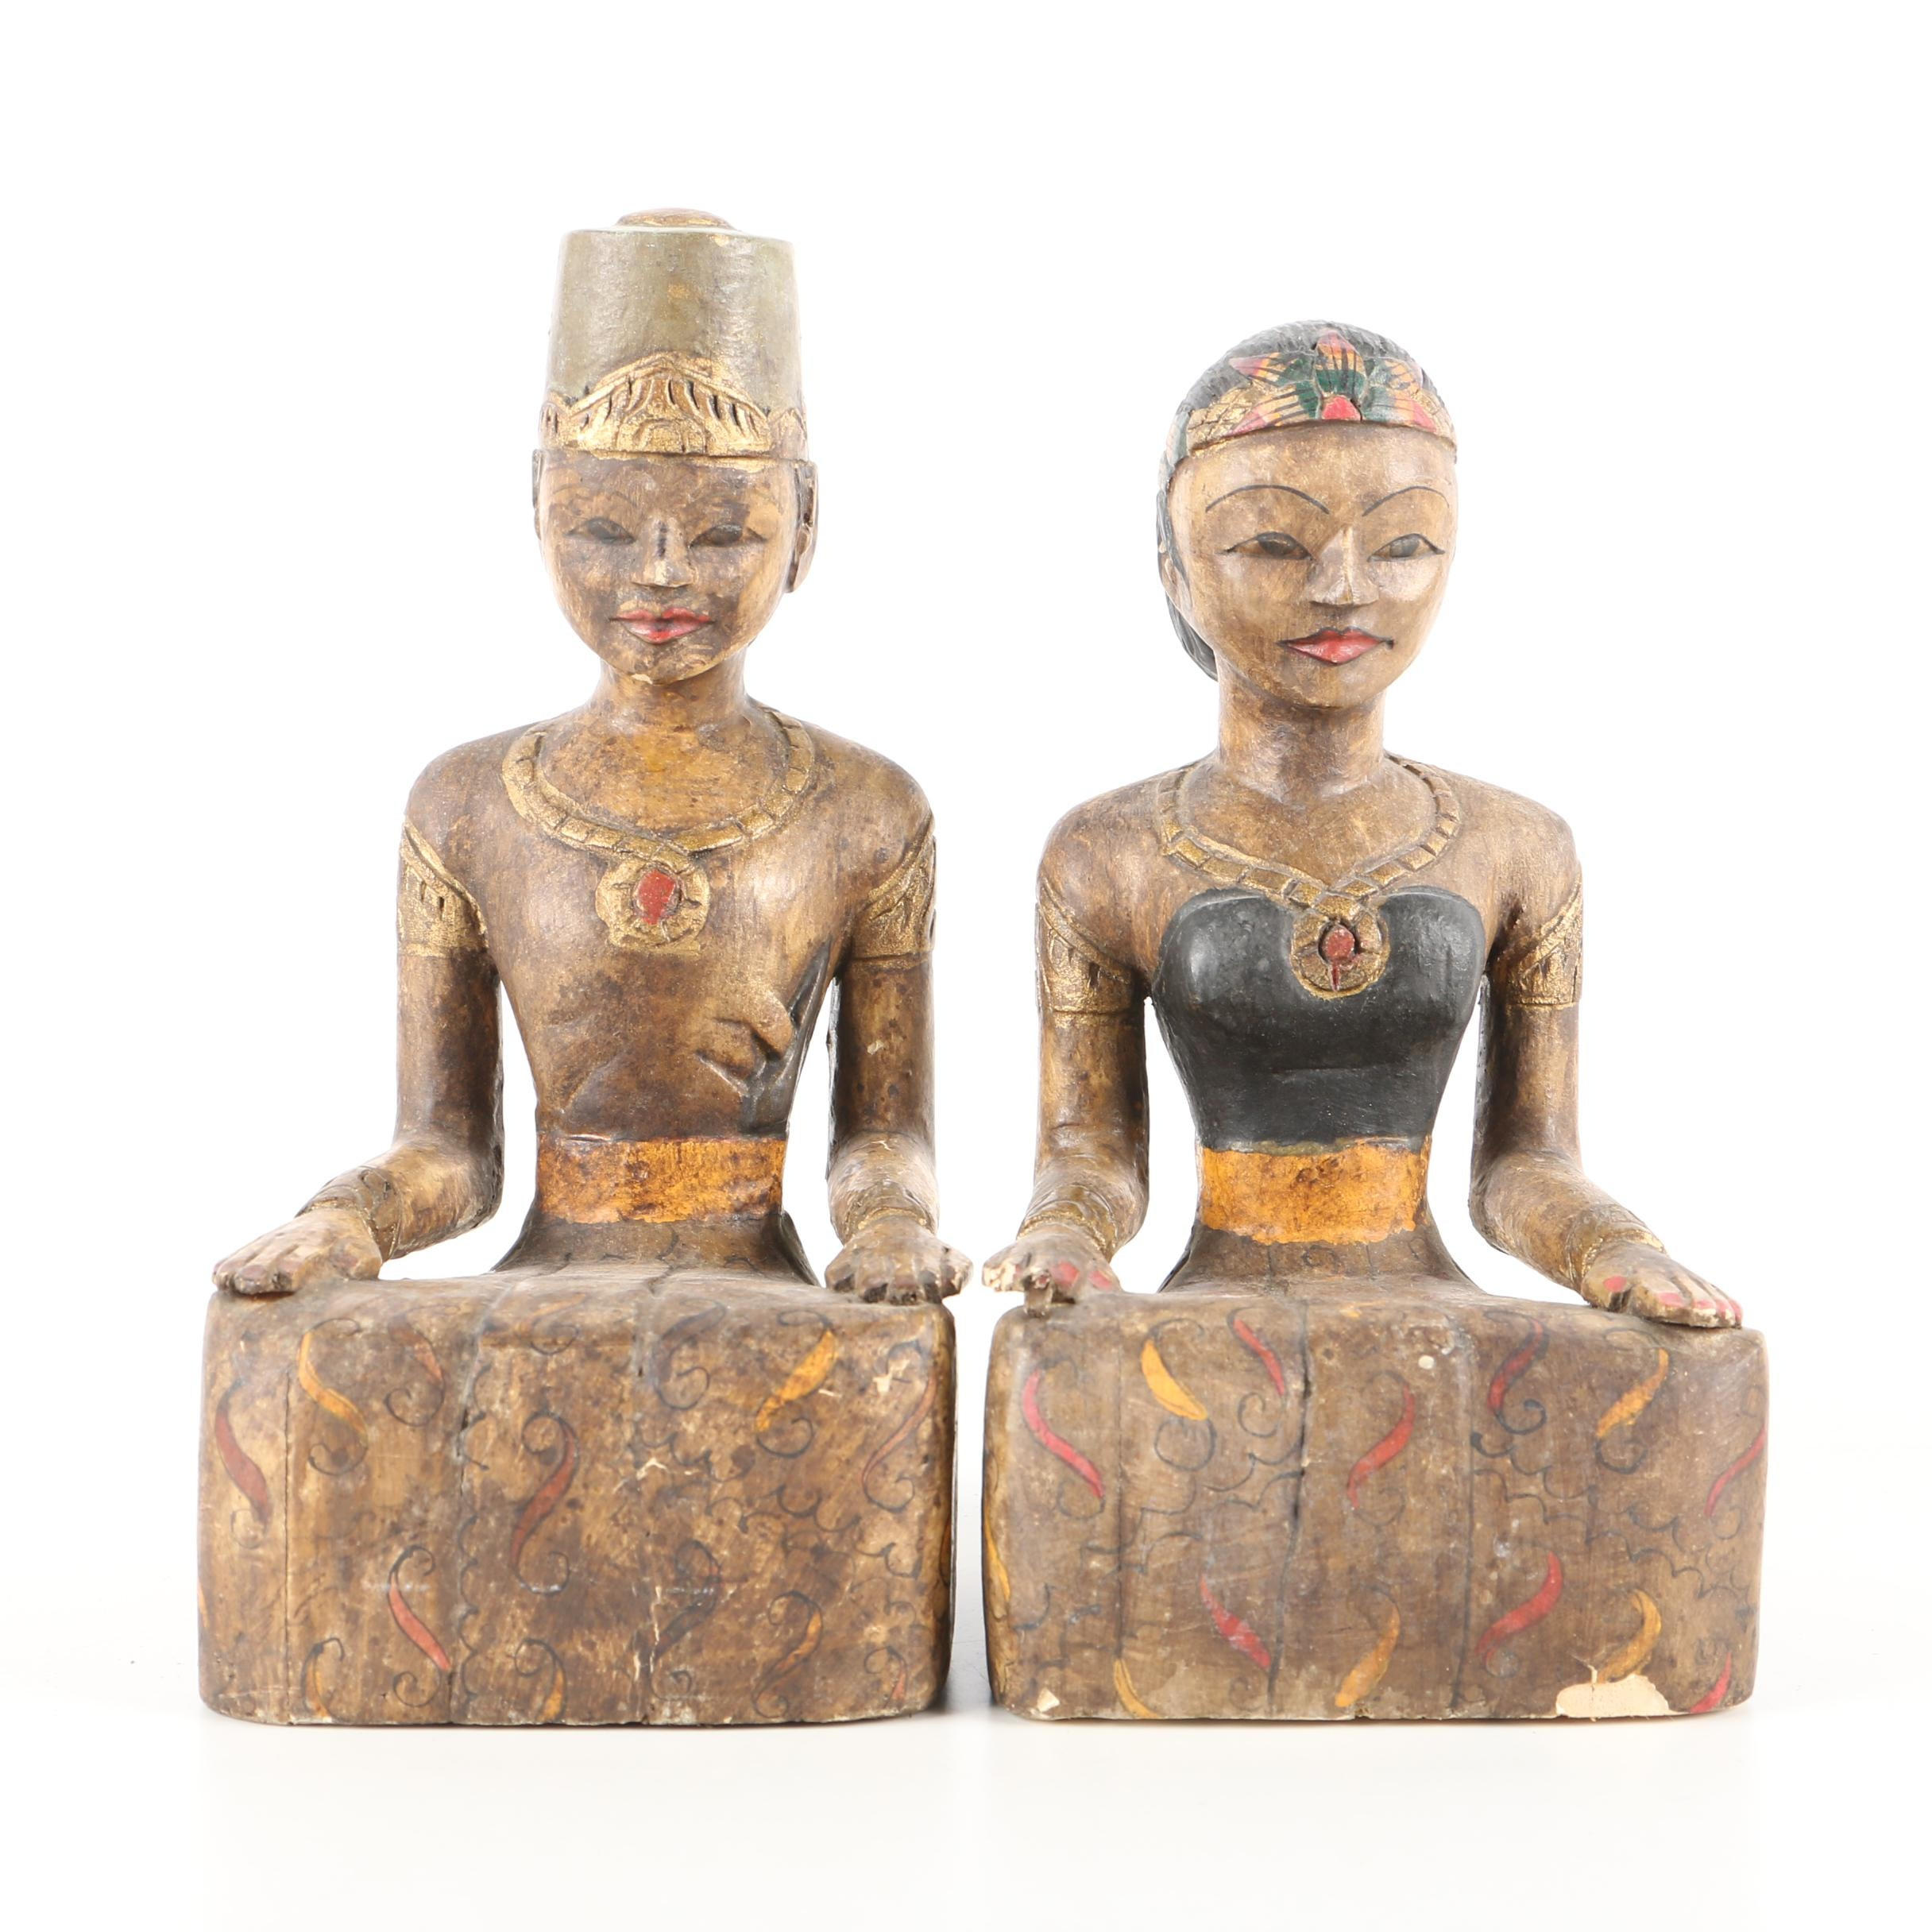 Pair of Southeast Asian Style Wooden Sculptures of a Wedding Couple